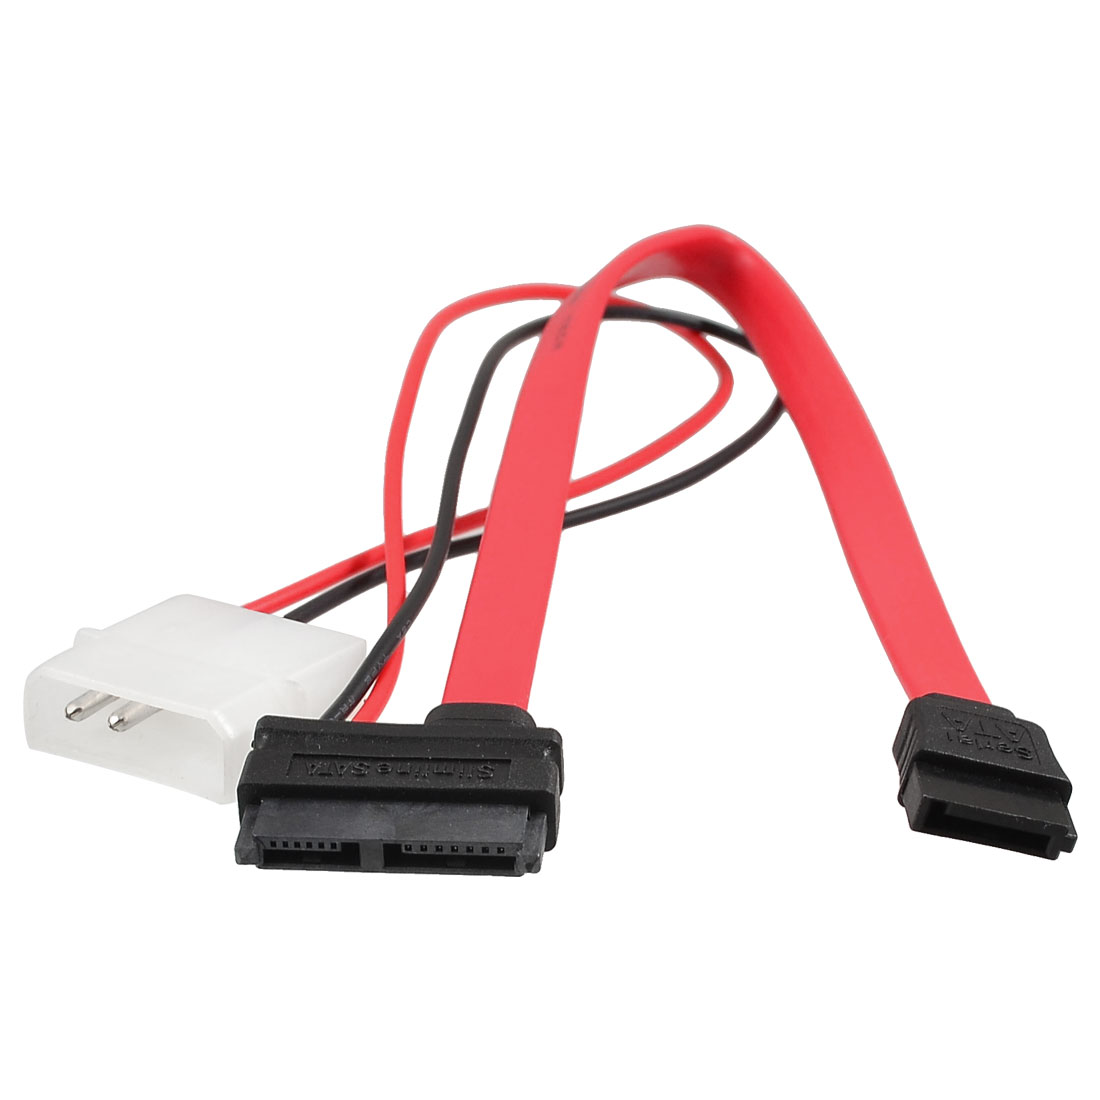 Slimline SATA 7+6P to SATA 7 Pin IDE 2-pin Power Cable Cord